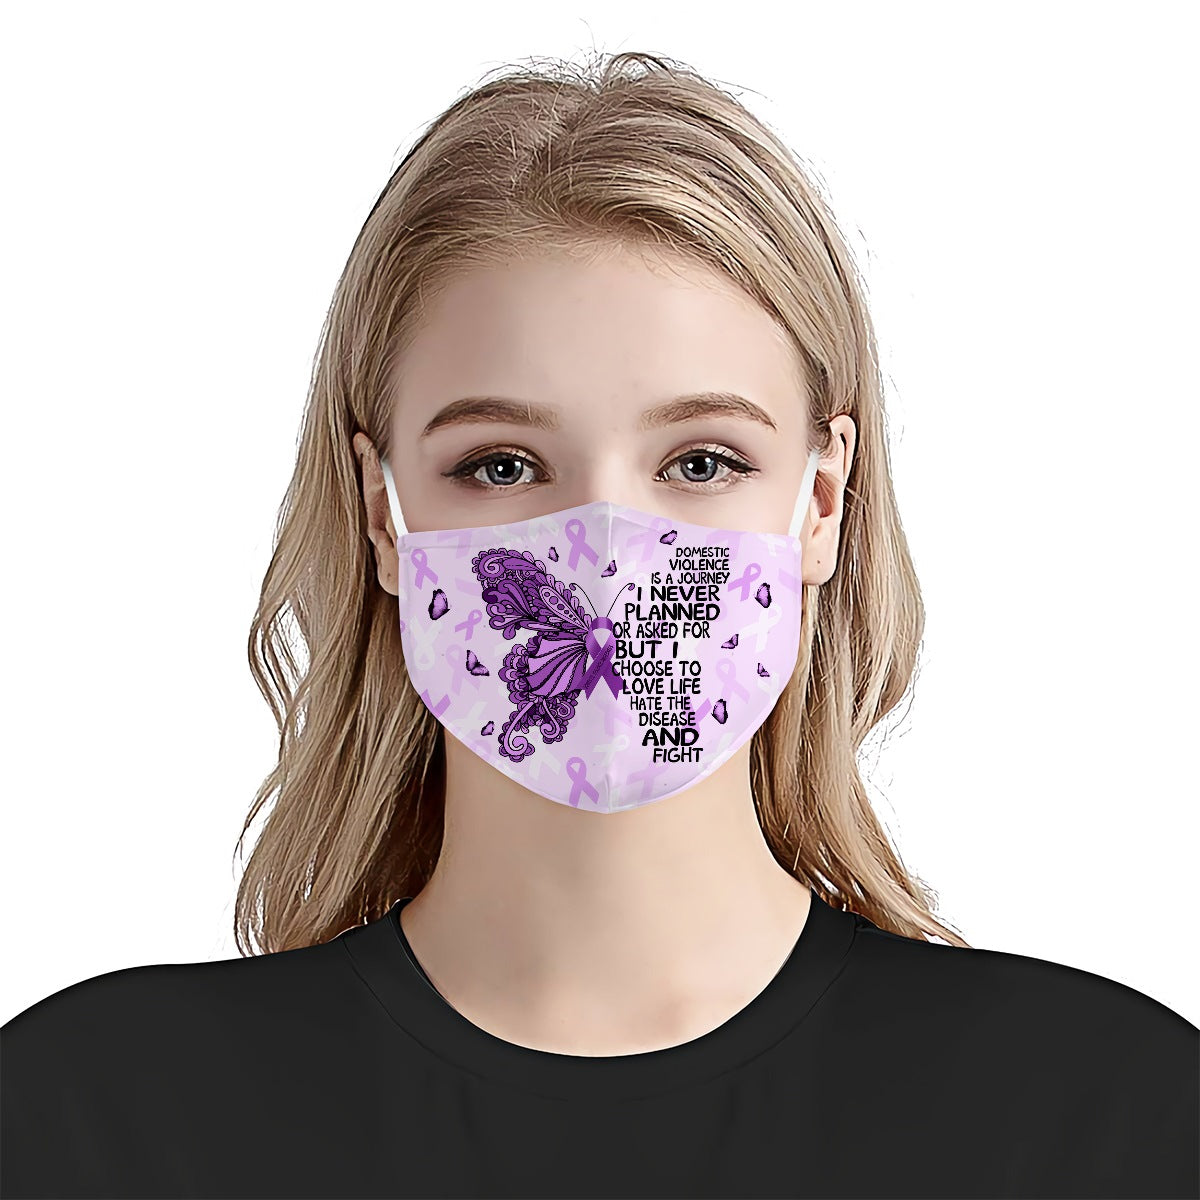 Domestic Violence Awareness Buffterfly Journey EZ01 2804 Face Mask - Hyperfavor